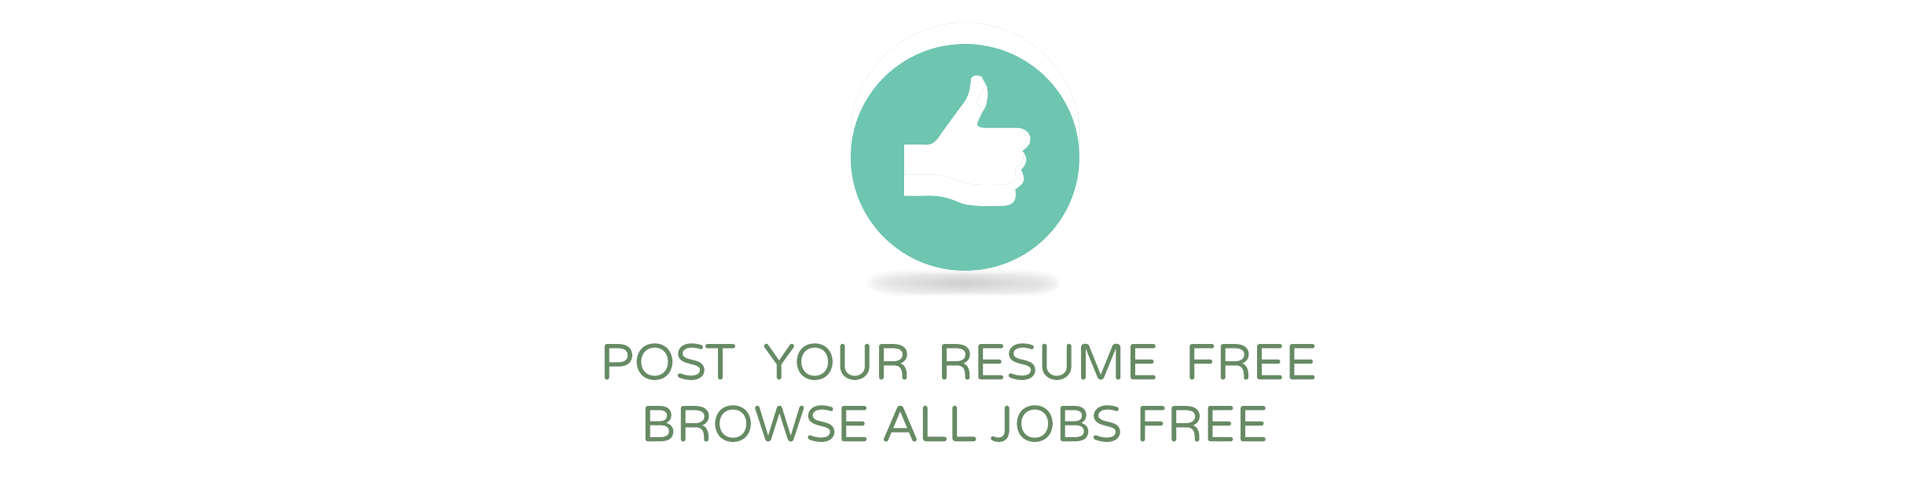 s net best website for all new york jobs post resume in new york nyc usa - Free Resume Search Sites